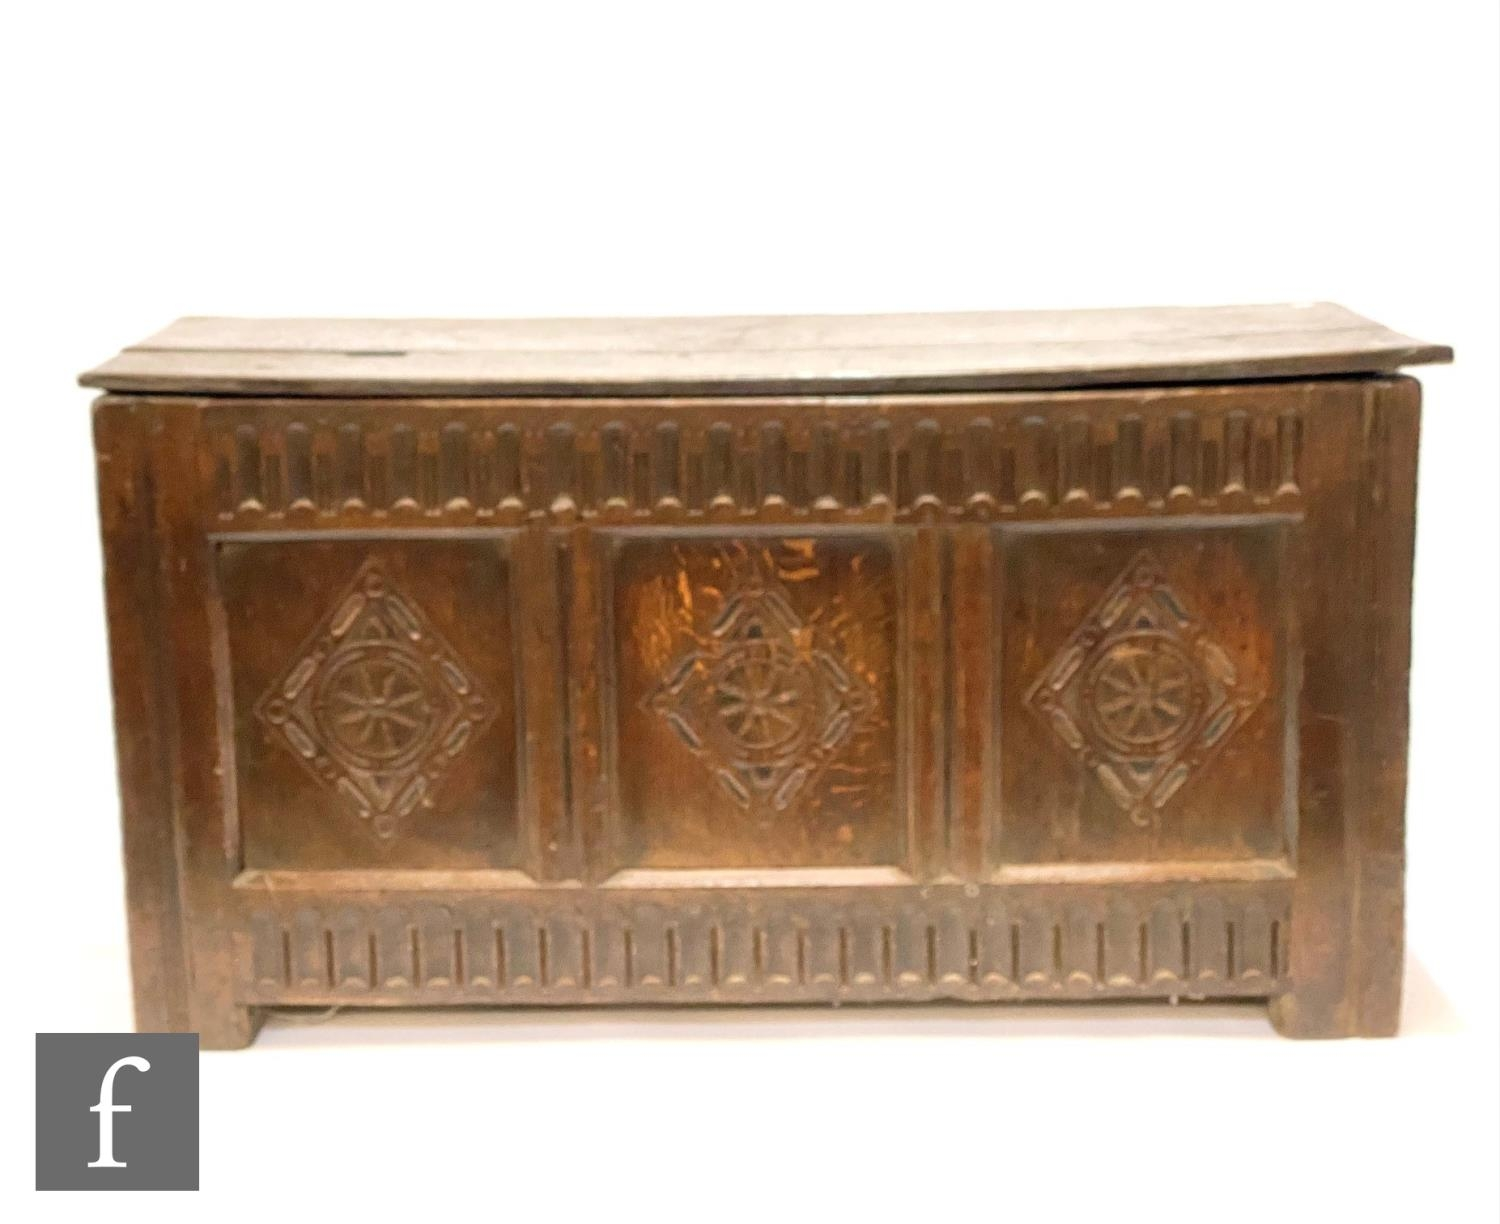 An early 18th Century carved oak coffer, the twin plank top over a lunette frieze and triple diamond